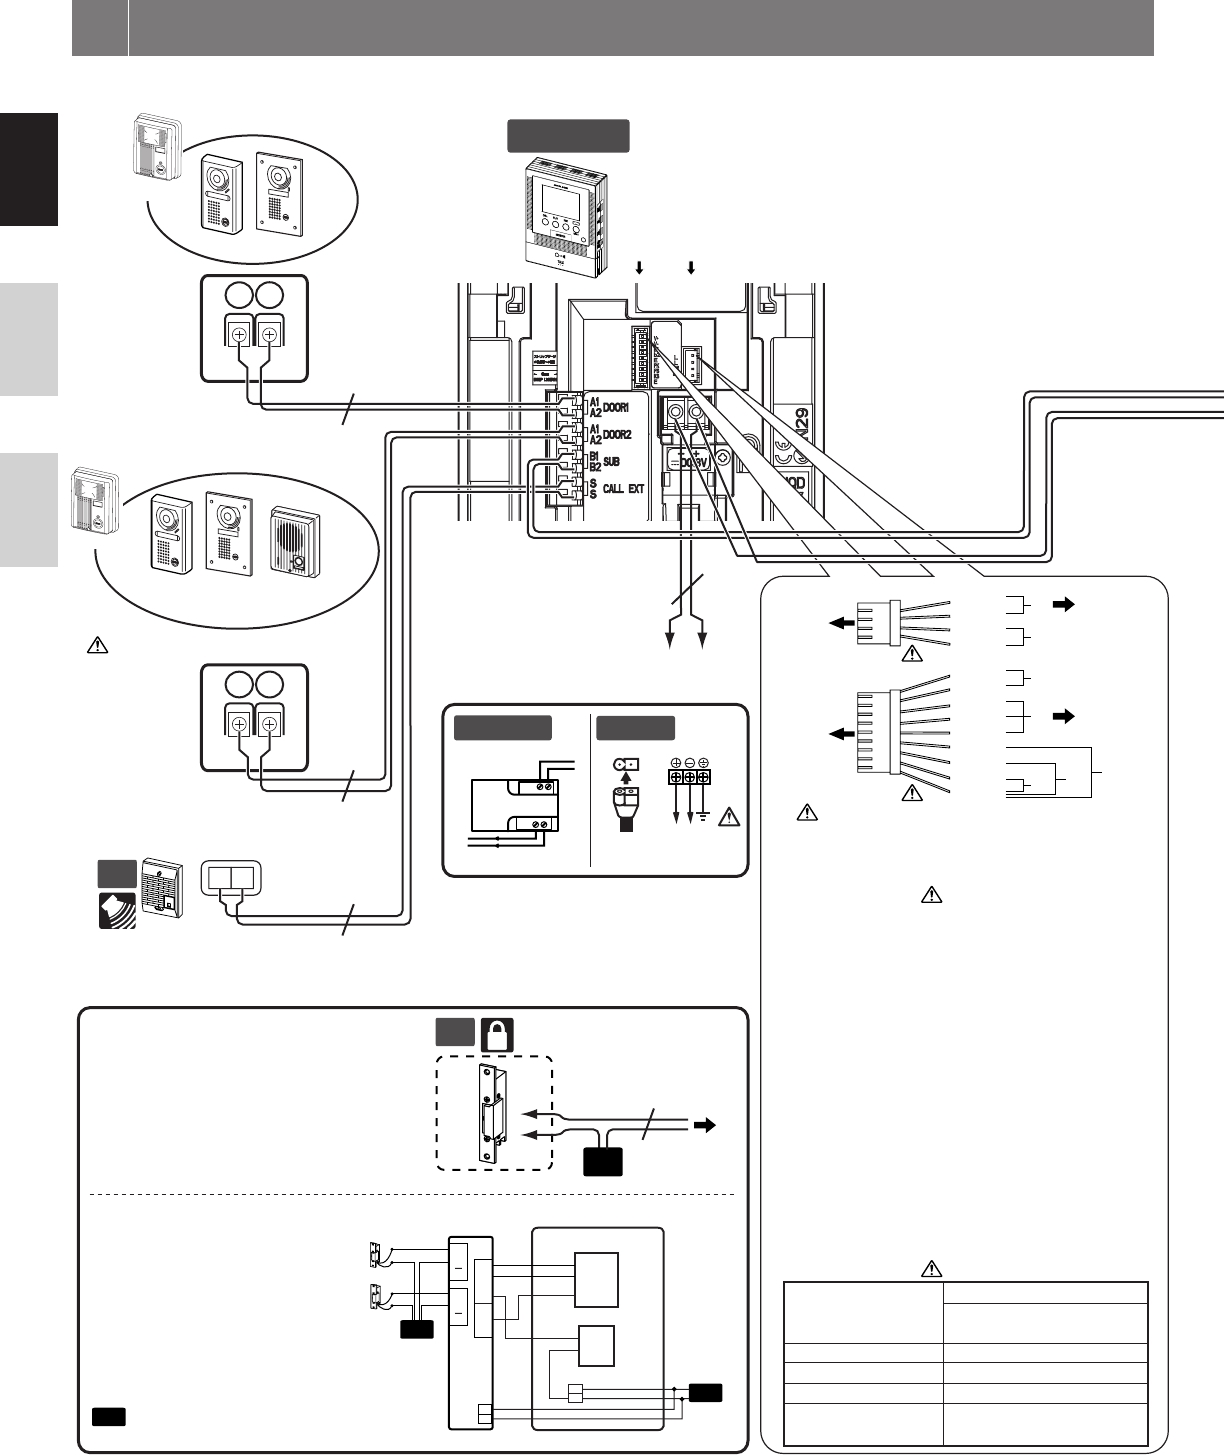 hight resolution of aiphone intercom wiring diagram free wiring diagram rh ricardolevinsmorales com electrical wiring diagrams for cars wire diagram army